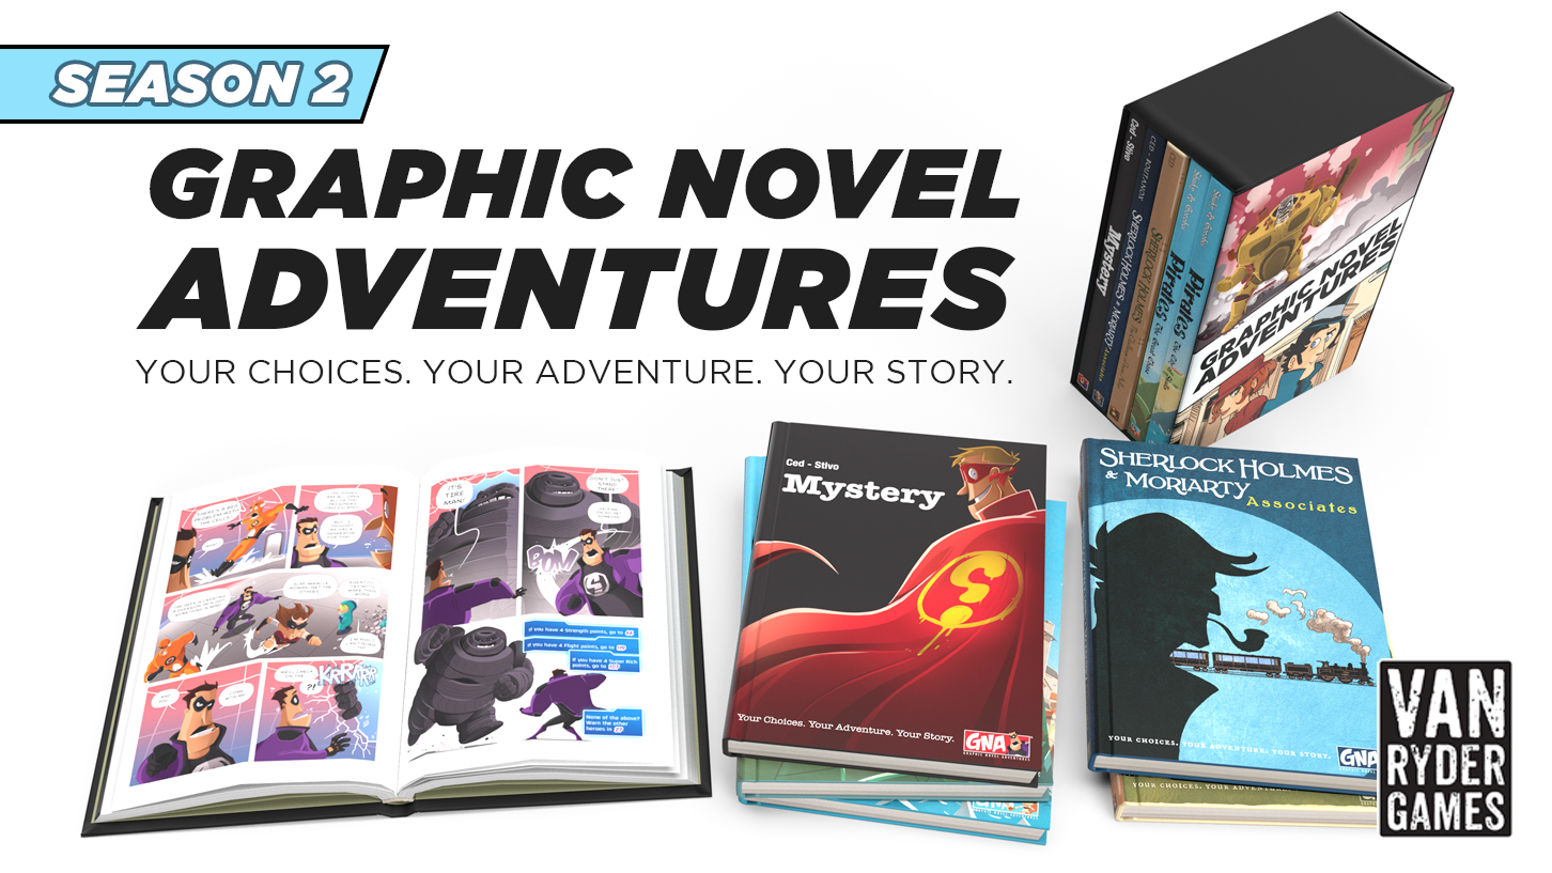 FIVE more books in the Graphic Novel Adventures line of game books. Your Choices. Your Adventure. Your Story.